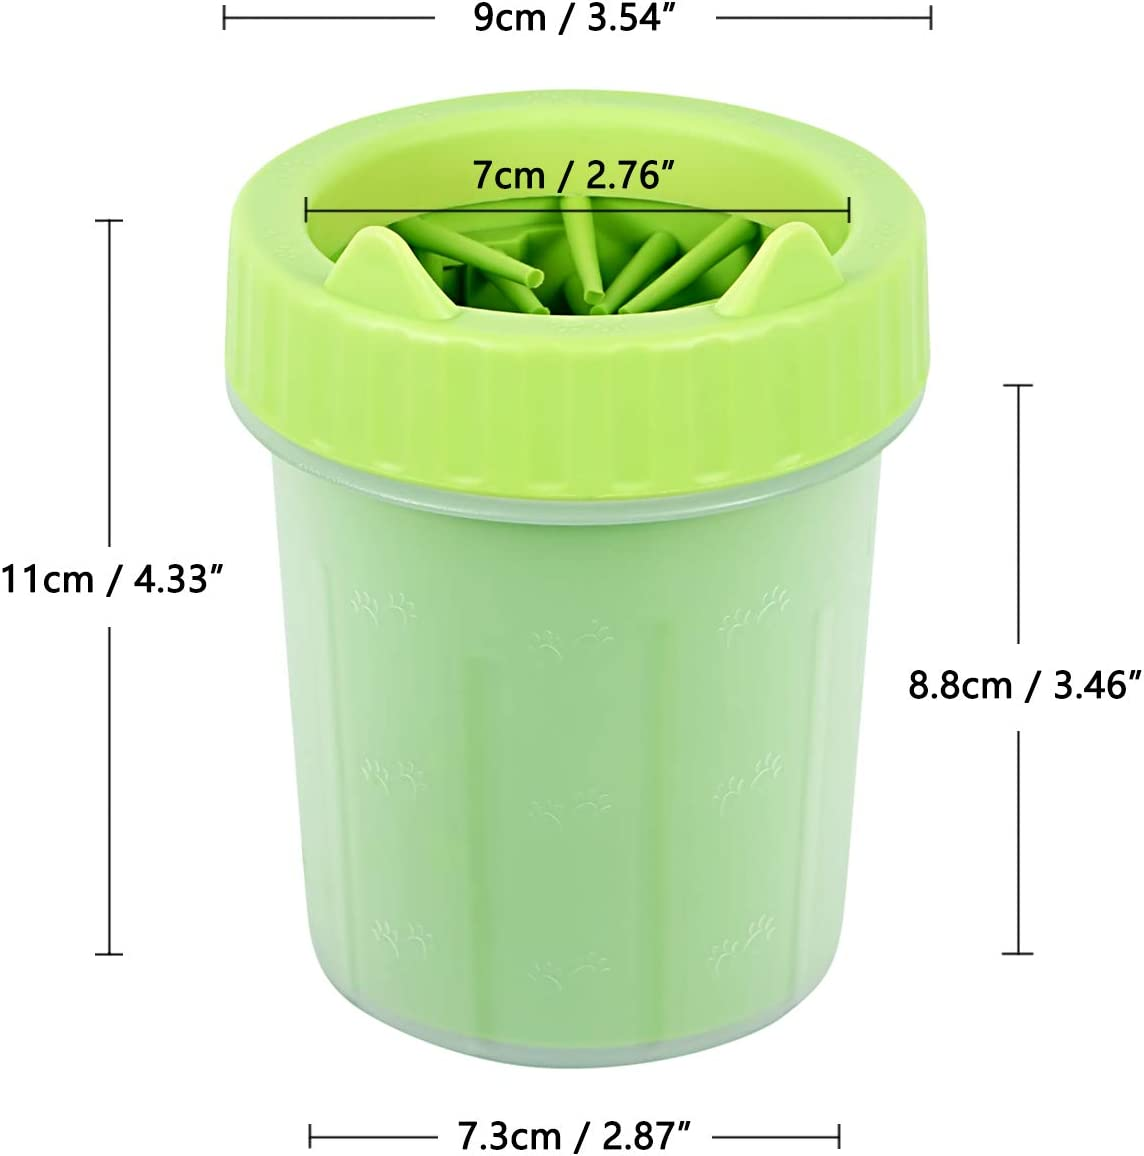 Green, Small VRAN Dog Paw Cleaner Portable Pet Paw Washing Cup Dog Foot Cleaning Brush Cup Pet Paw Washer with Soft Silicone Bristles for Removing Dirt and Mud